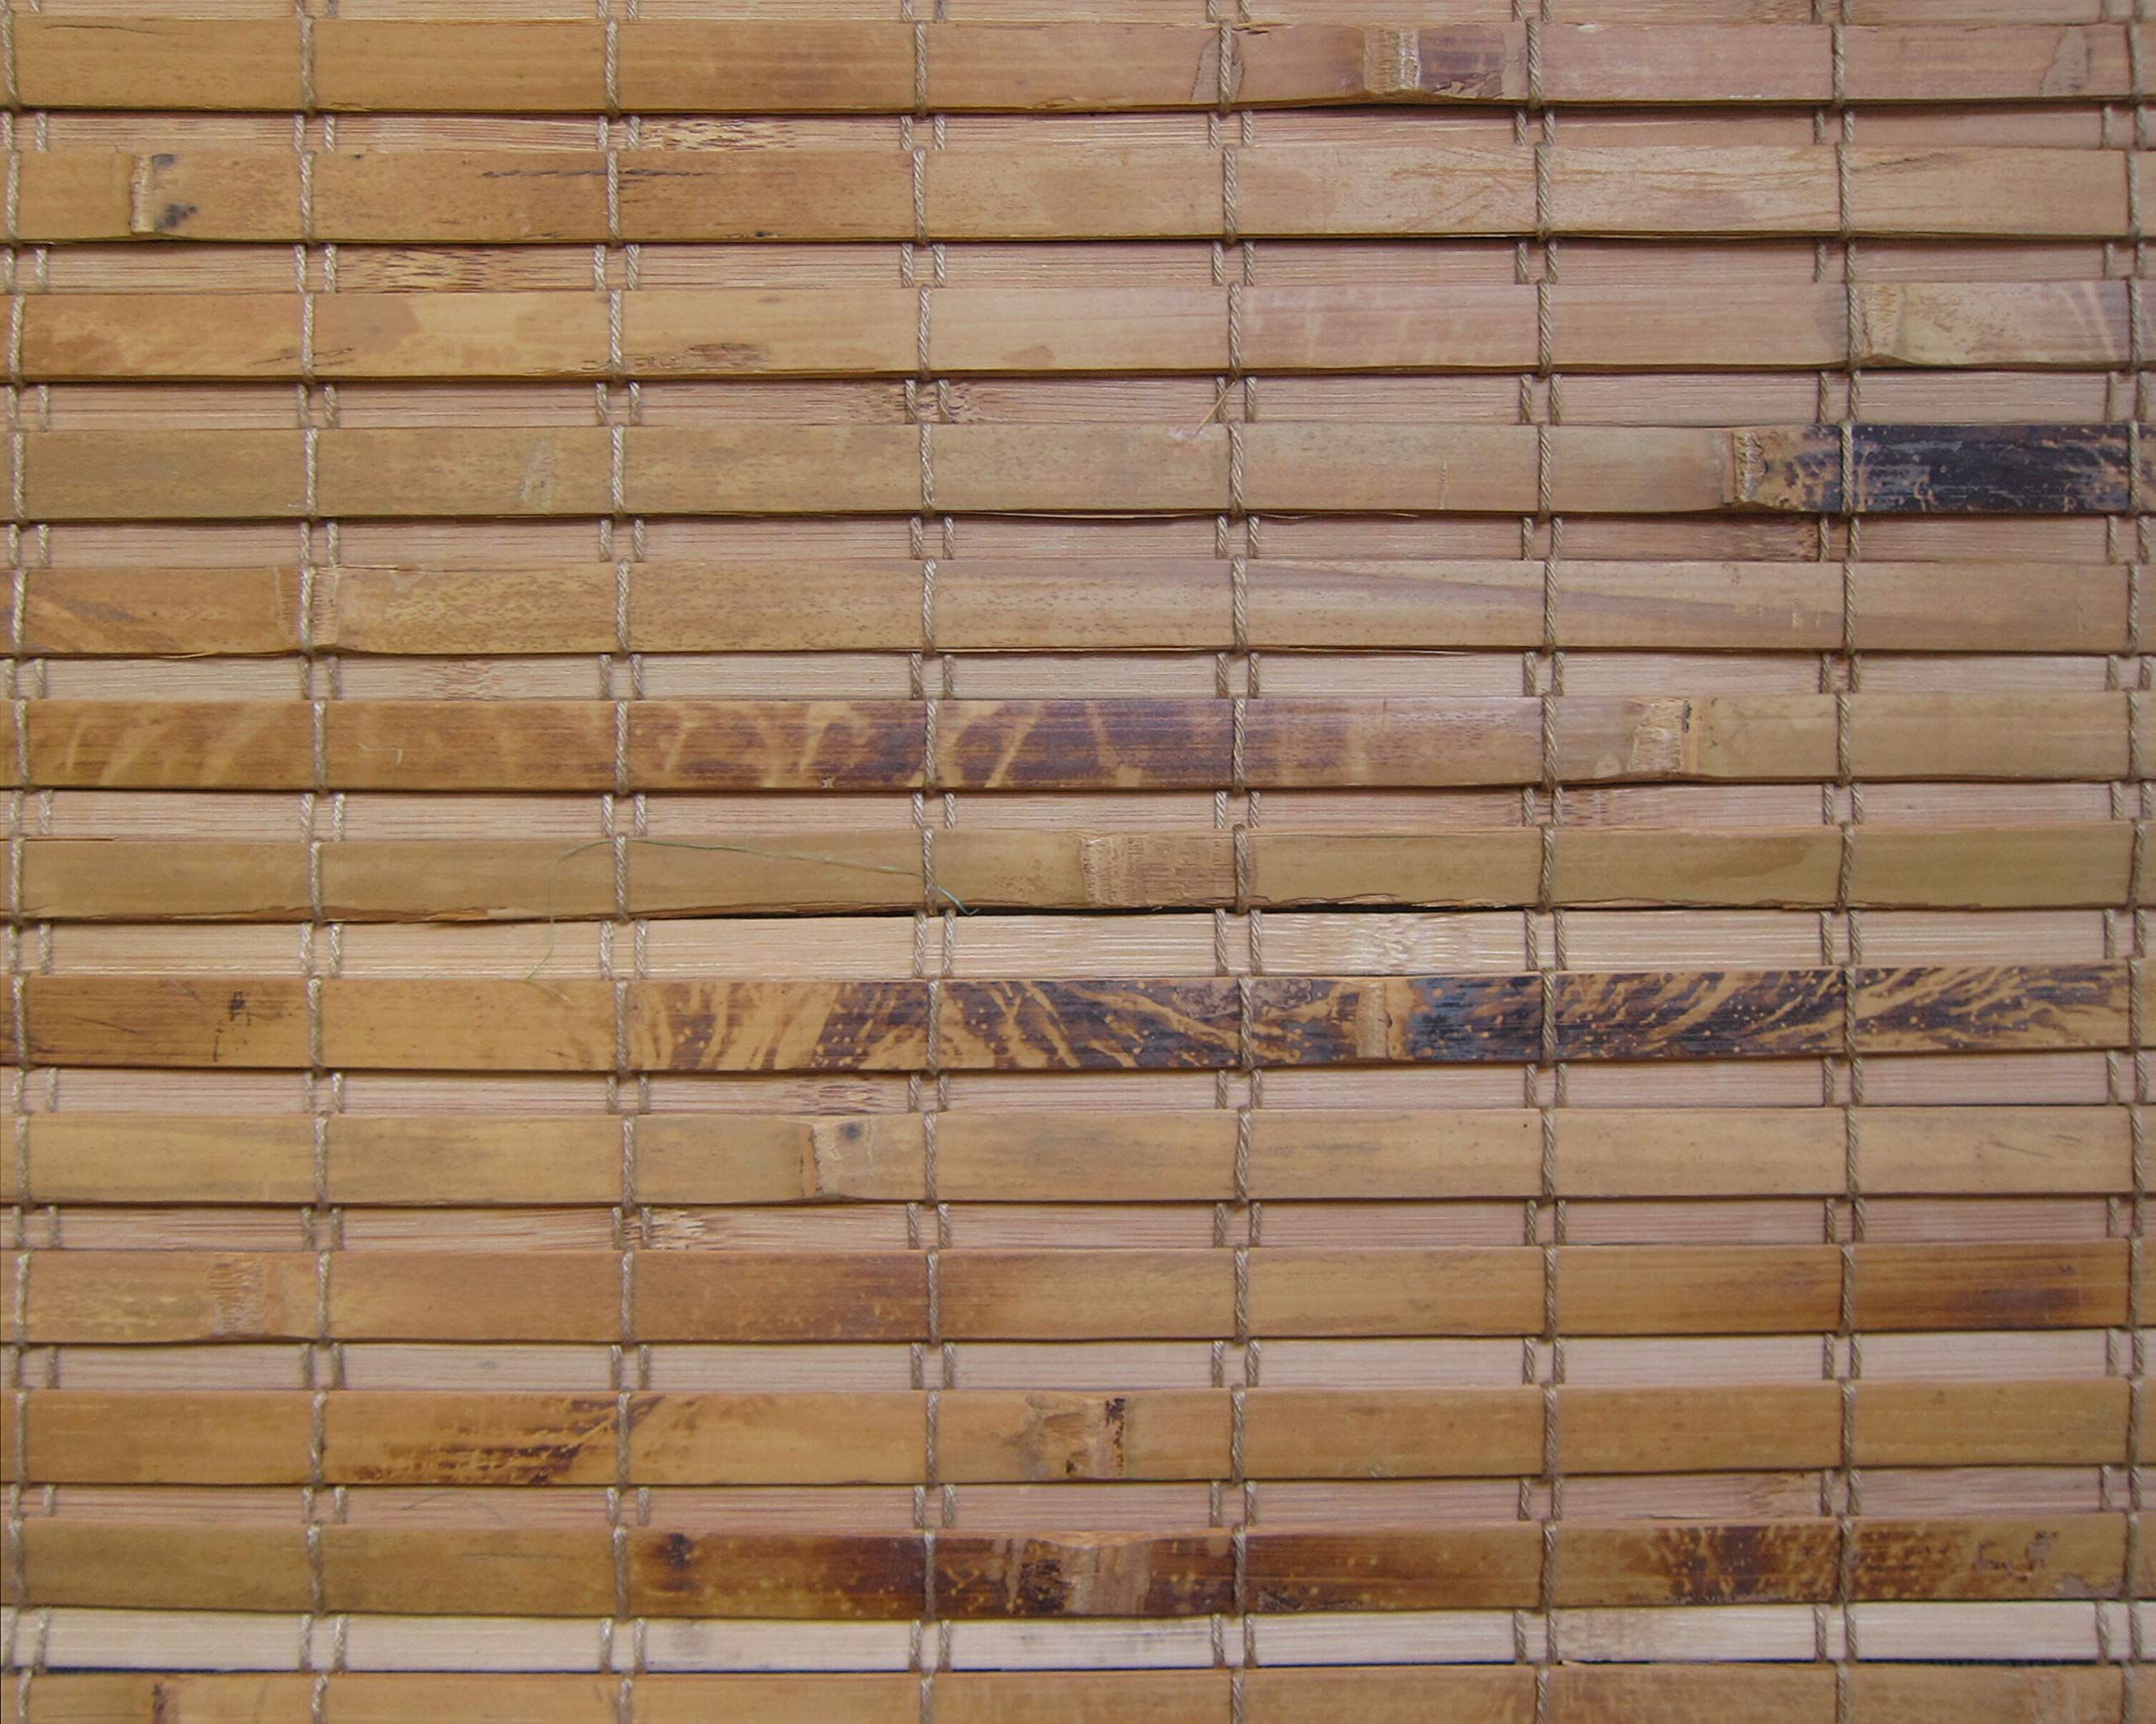 Cordless Woven Wood Roman Shades, 44W x 60H, Hatteras Camel, Any Size 20-72 Wide and 24-72 High by Windowsandgarden